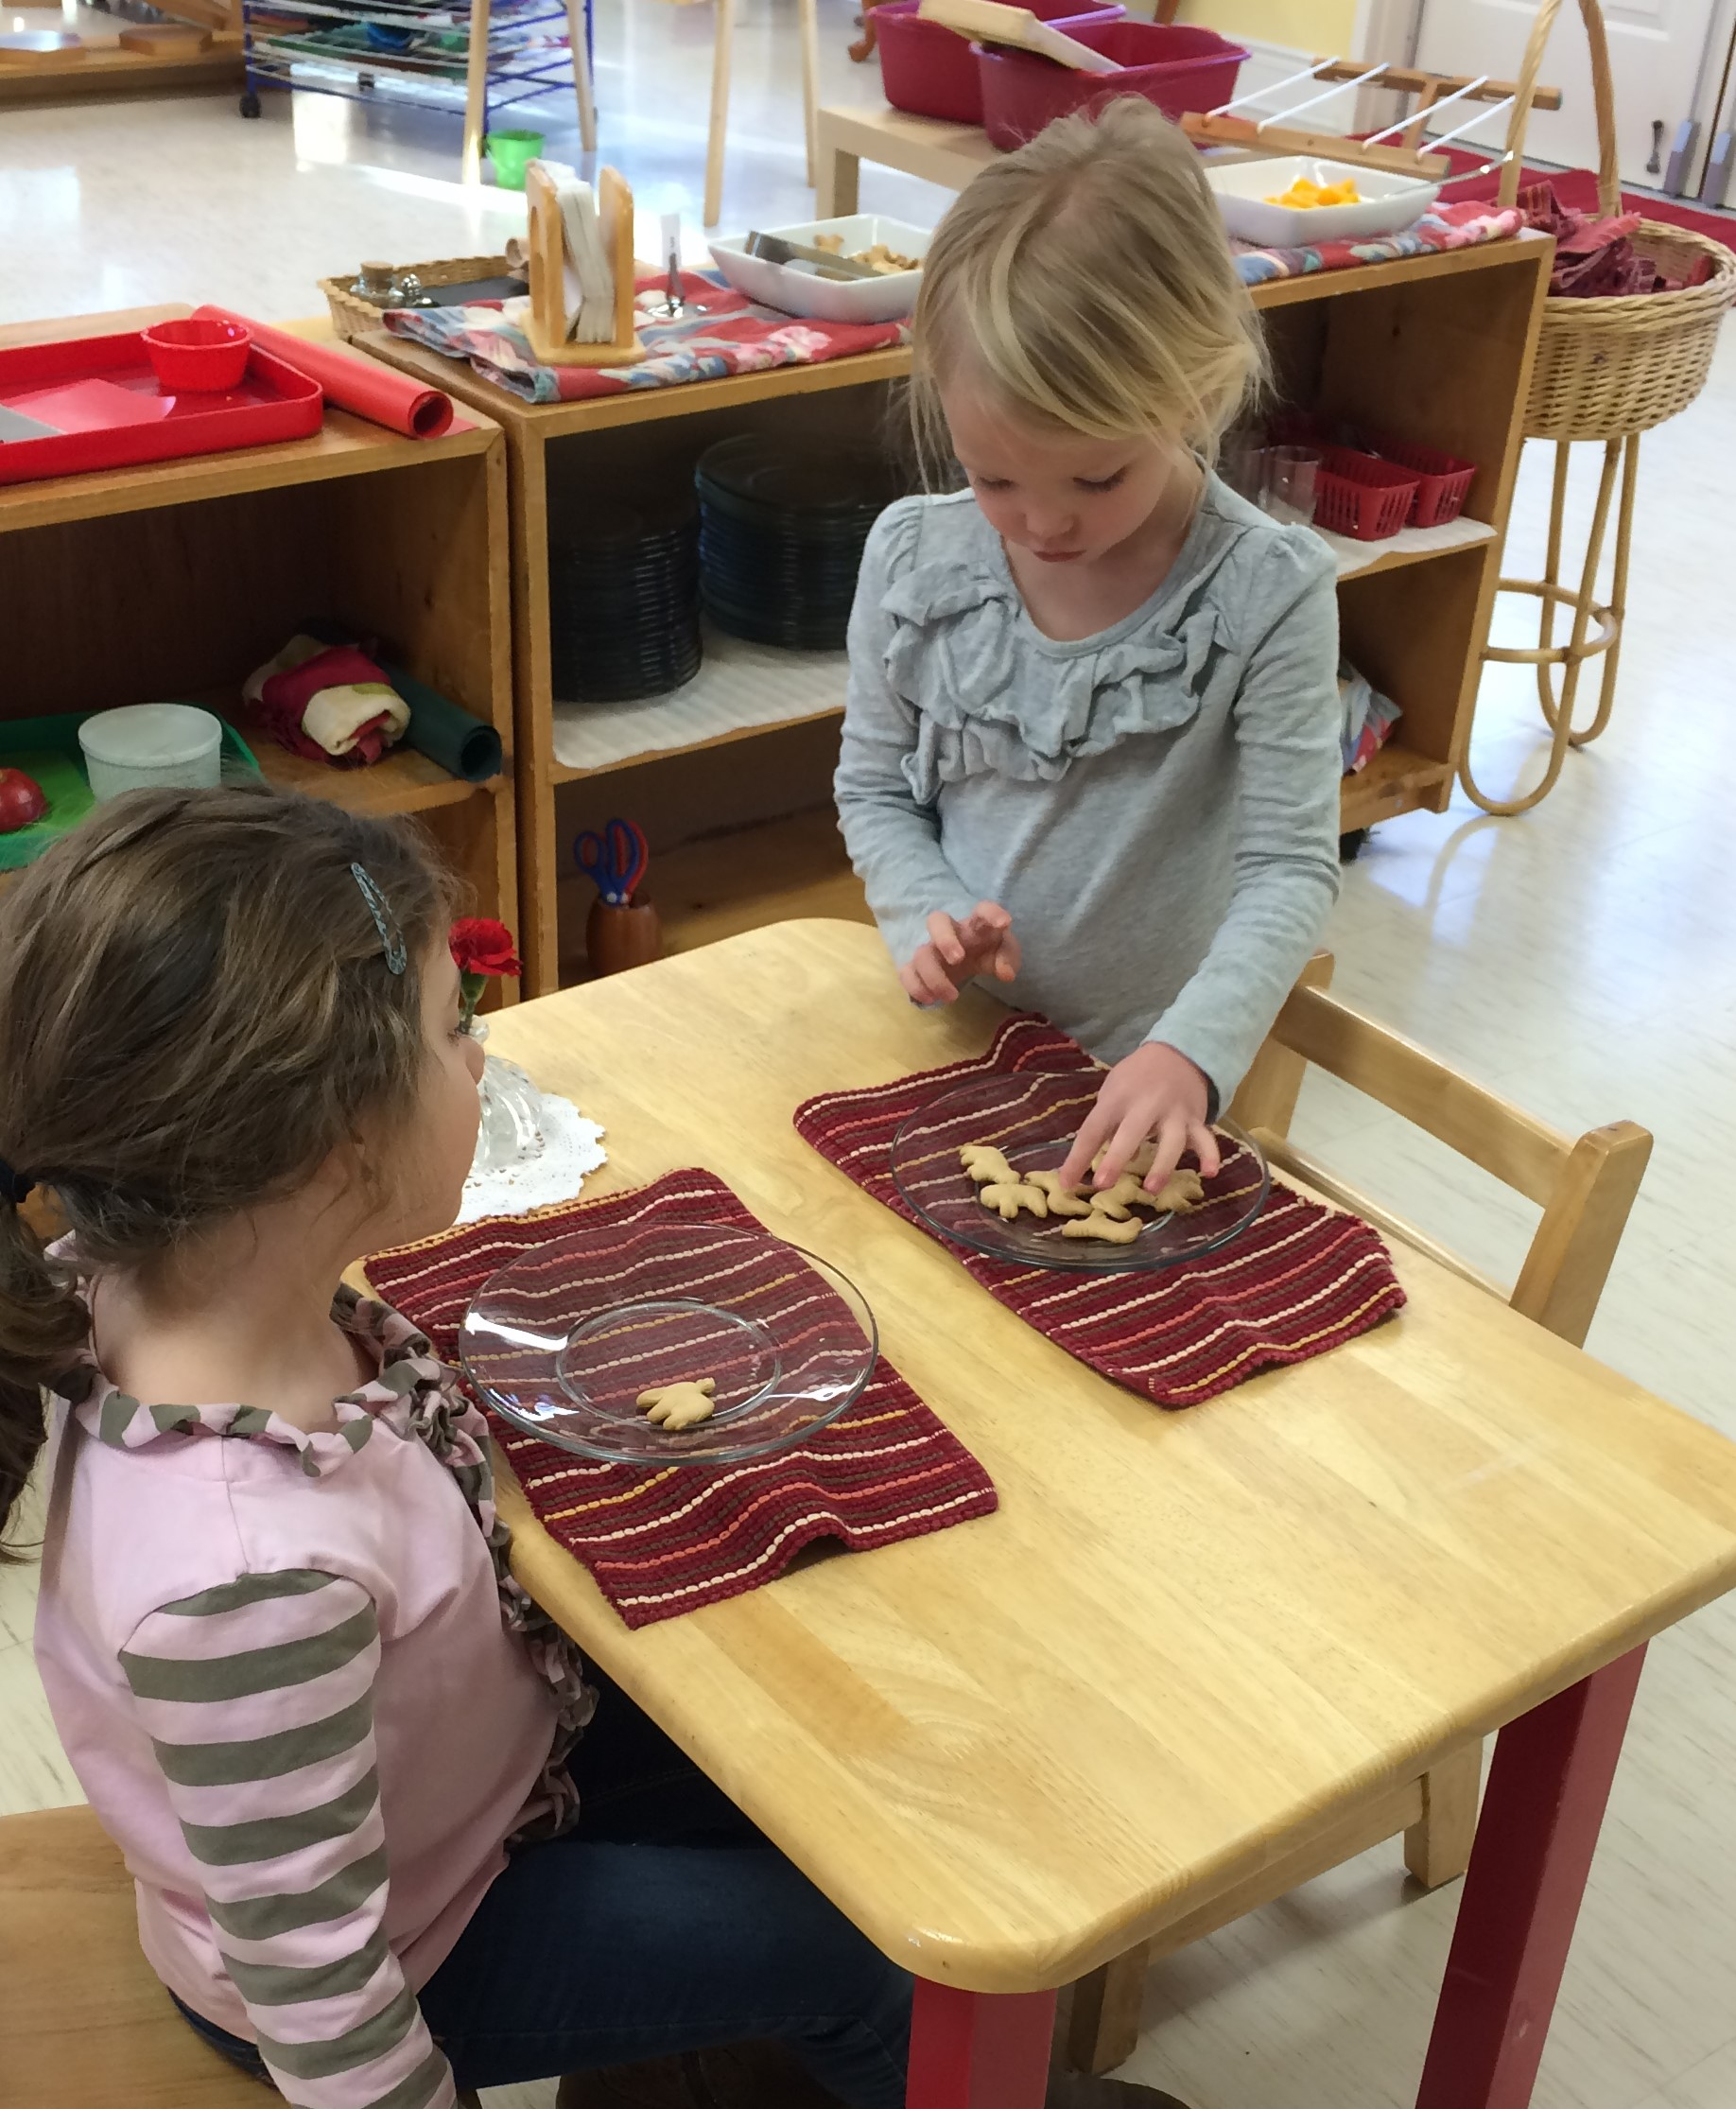 We cannot forget snack as it is an intricate part of the day. The children eat in pairs. Numbers are placed beside the snack allowing the children to help themselves to the allotted amount. The child is able to practice table manners and enjoy the company of their friend.